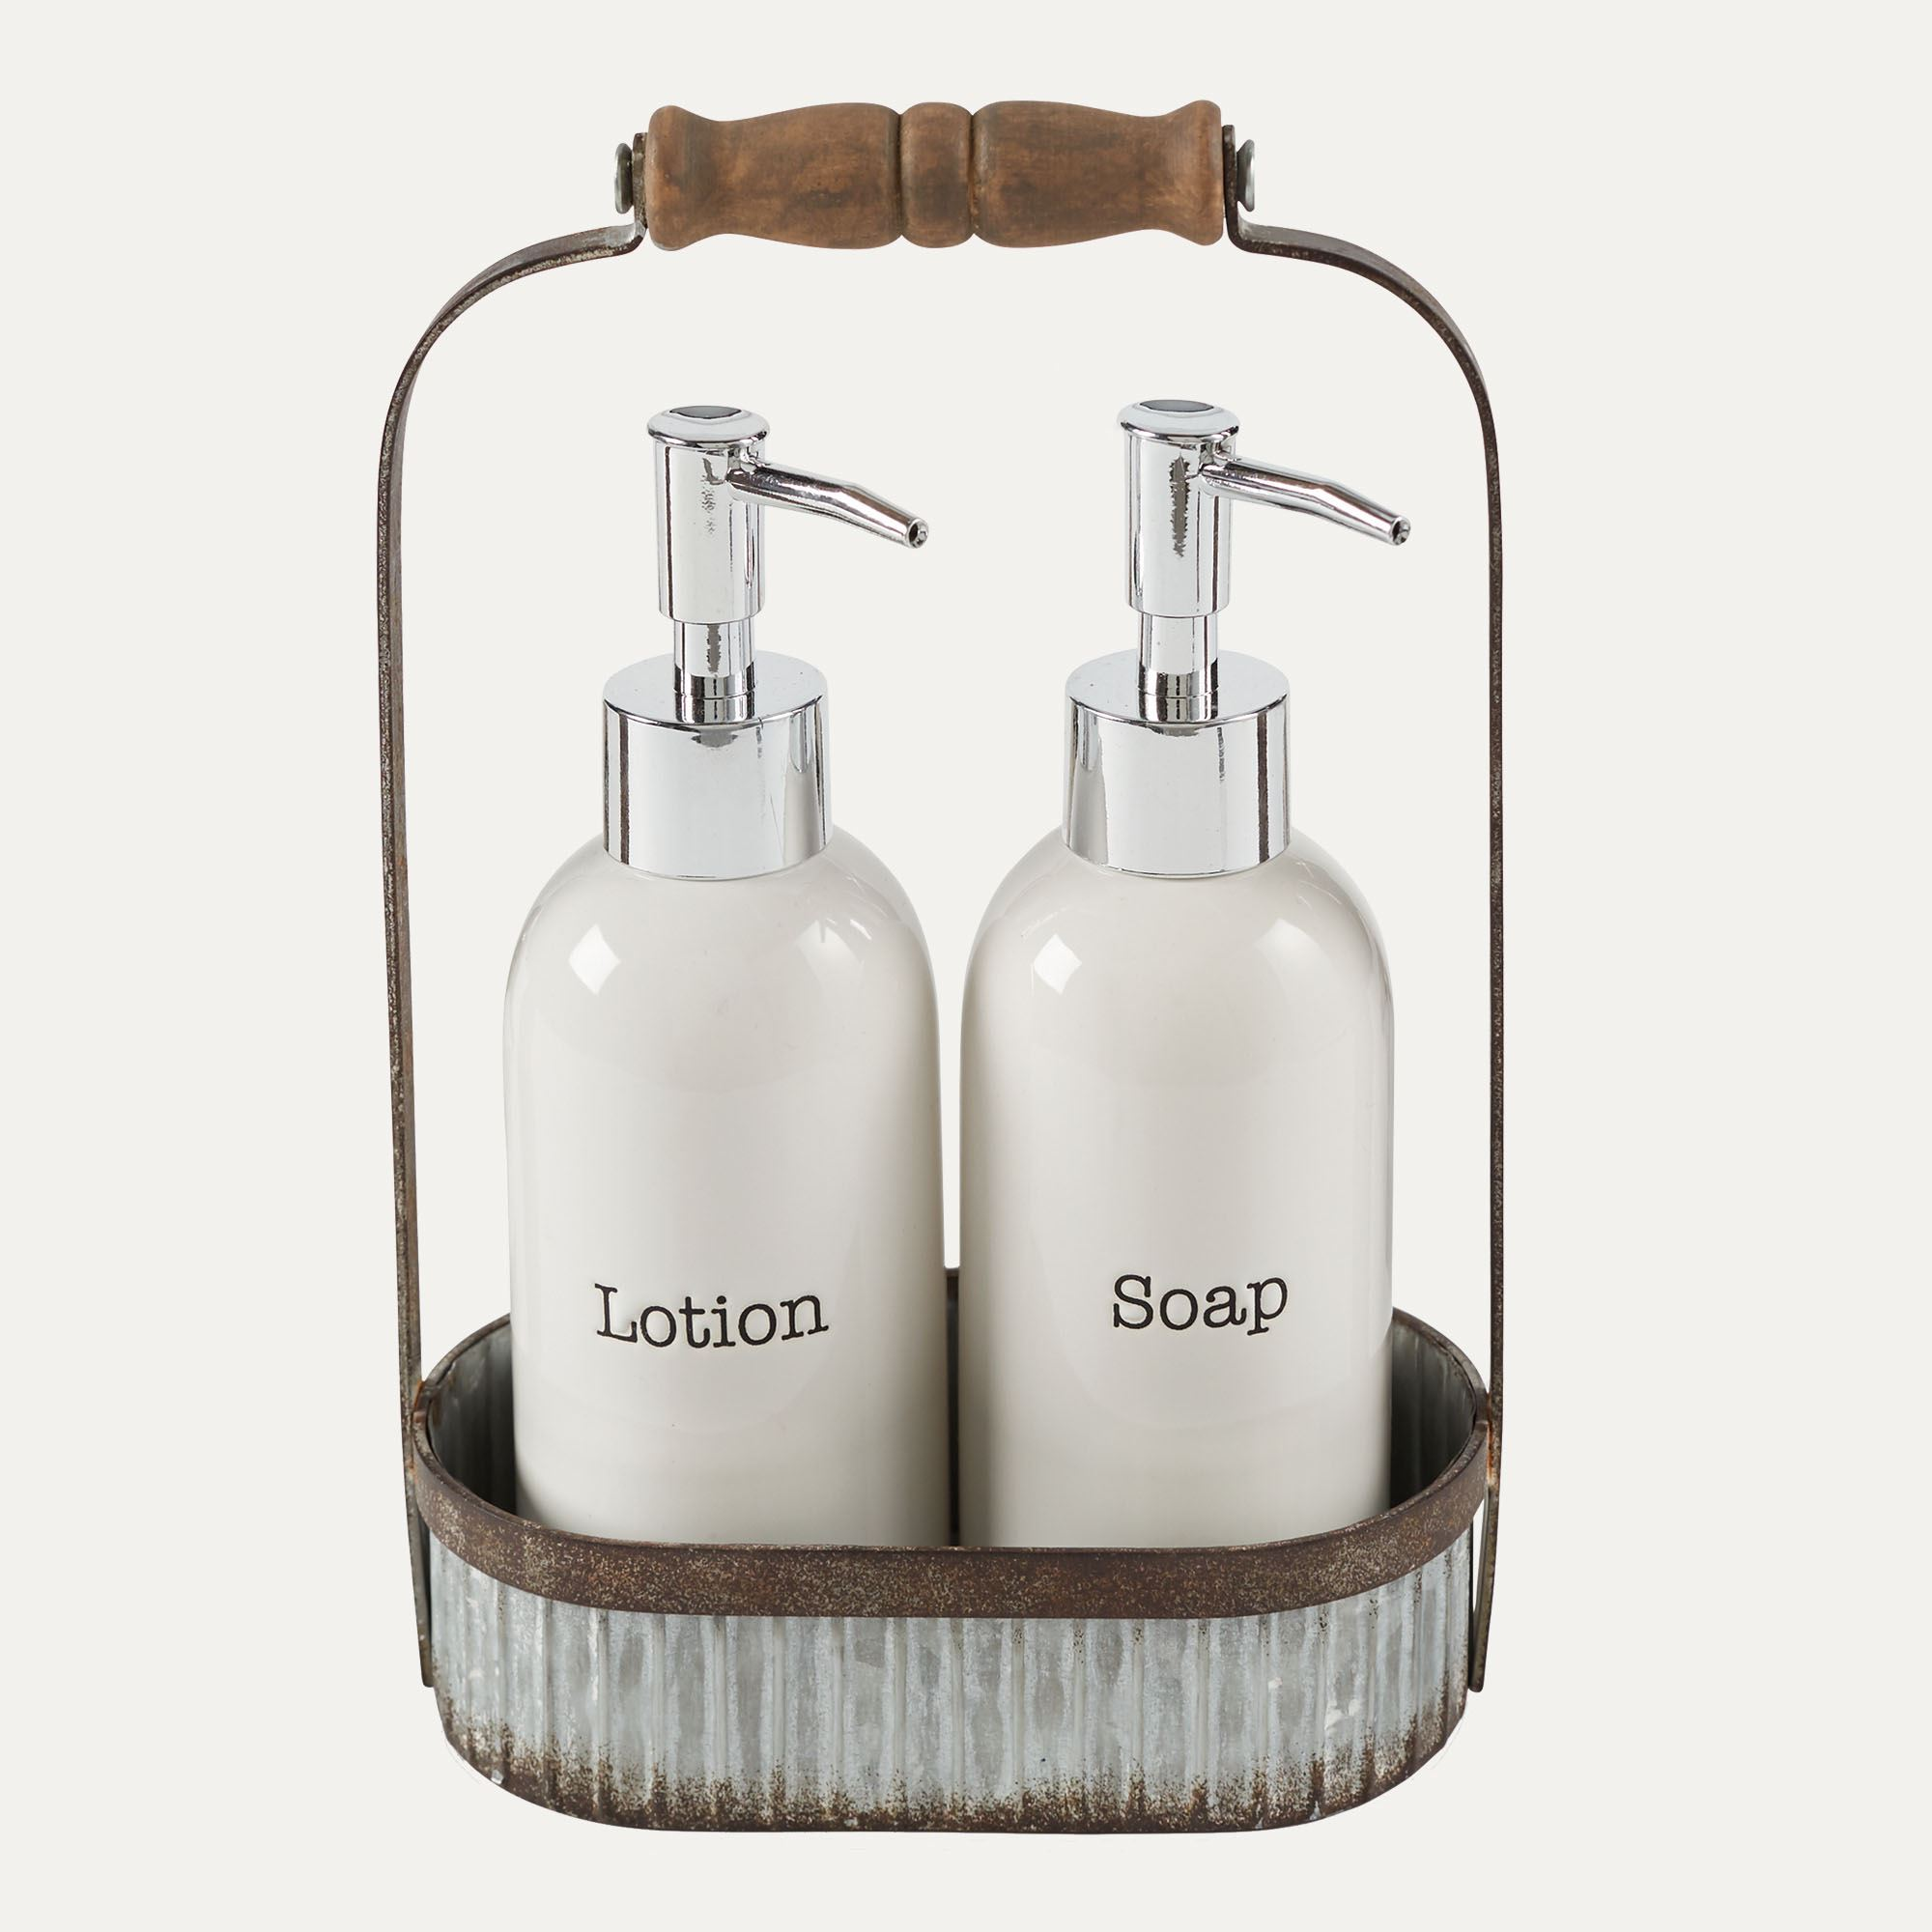 Galvanized Tin Caddy With Ceramic Lotion And Soap Pumps Set